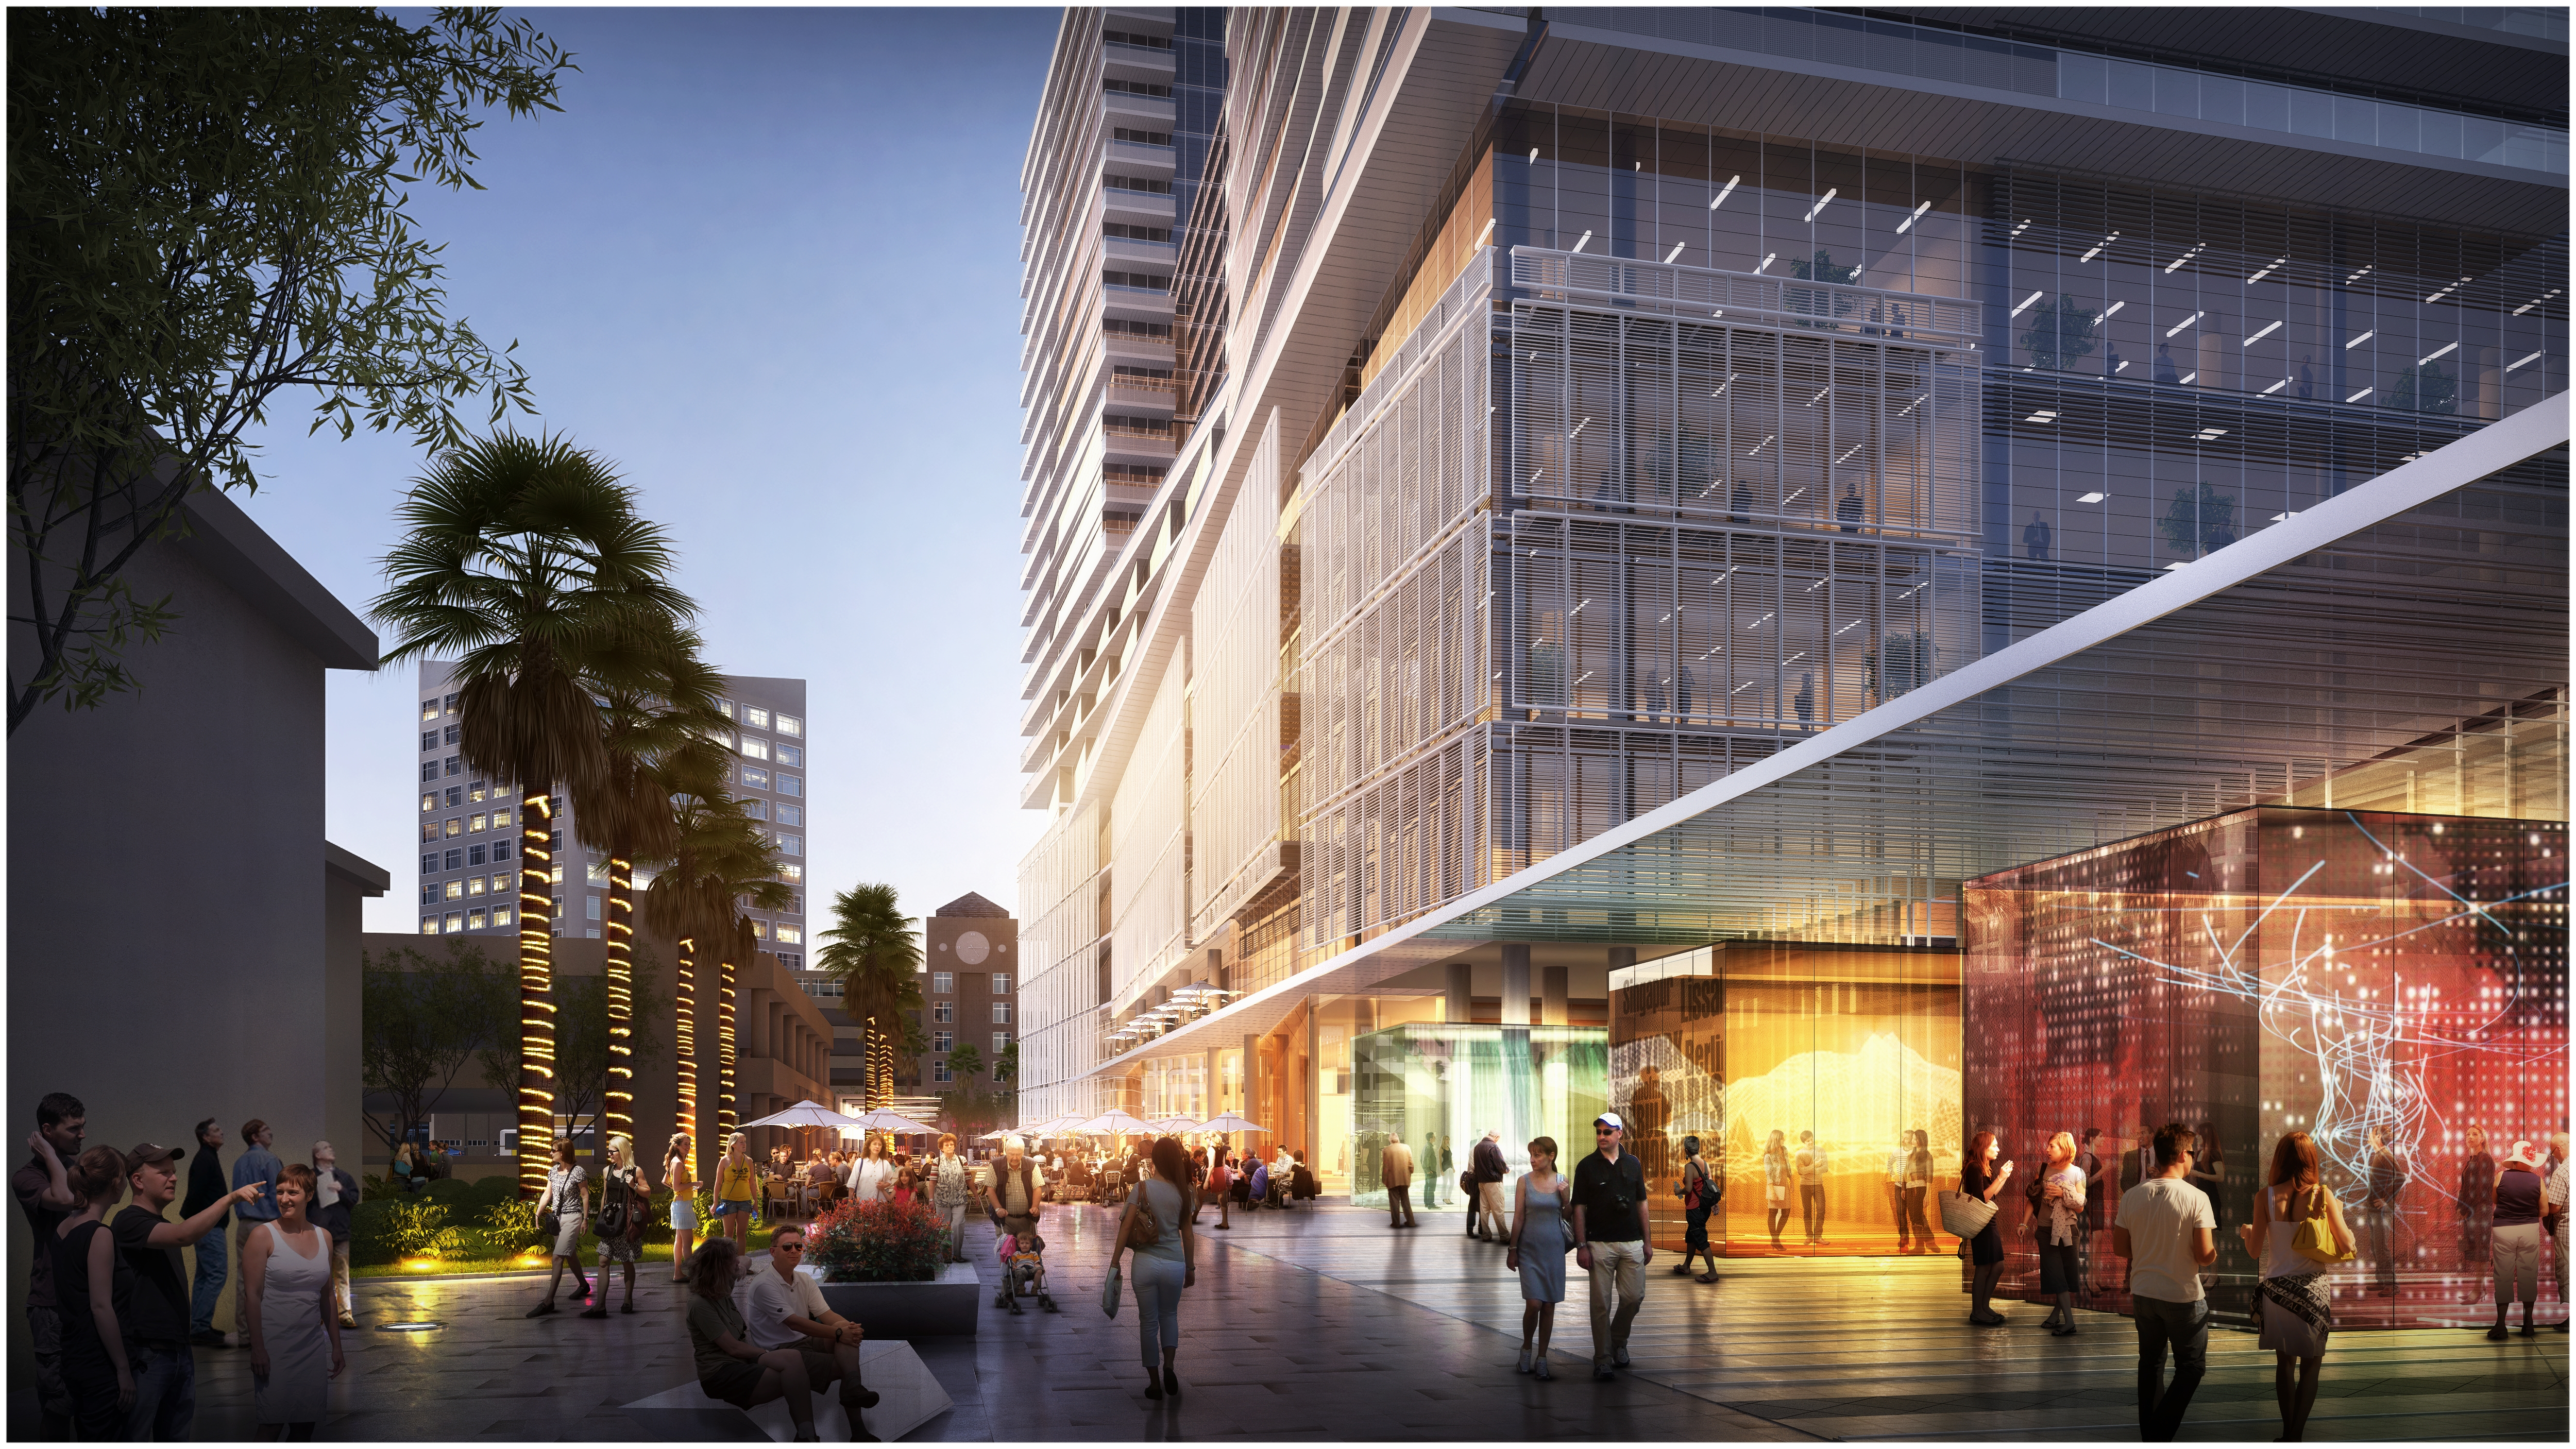 Kimpton Hotels Restaurants Announce Partnership In Major Silicon Valley Project